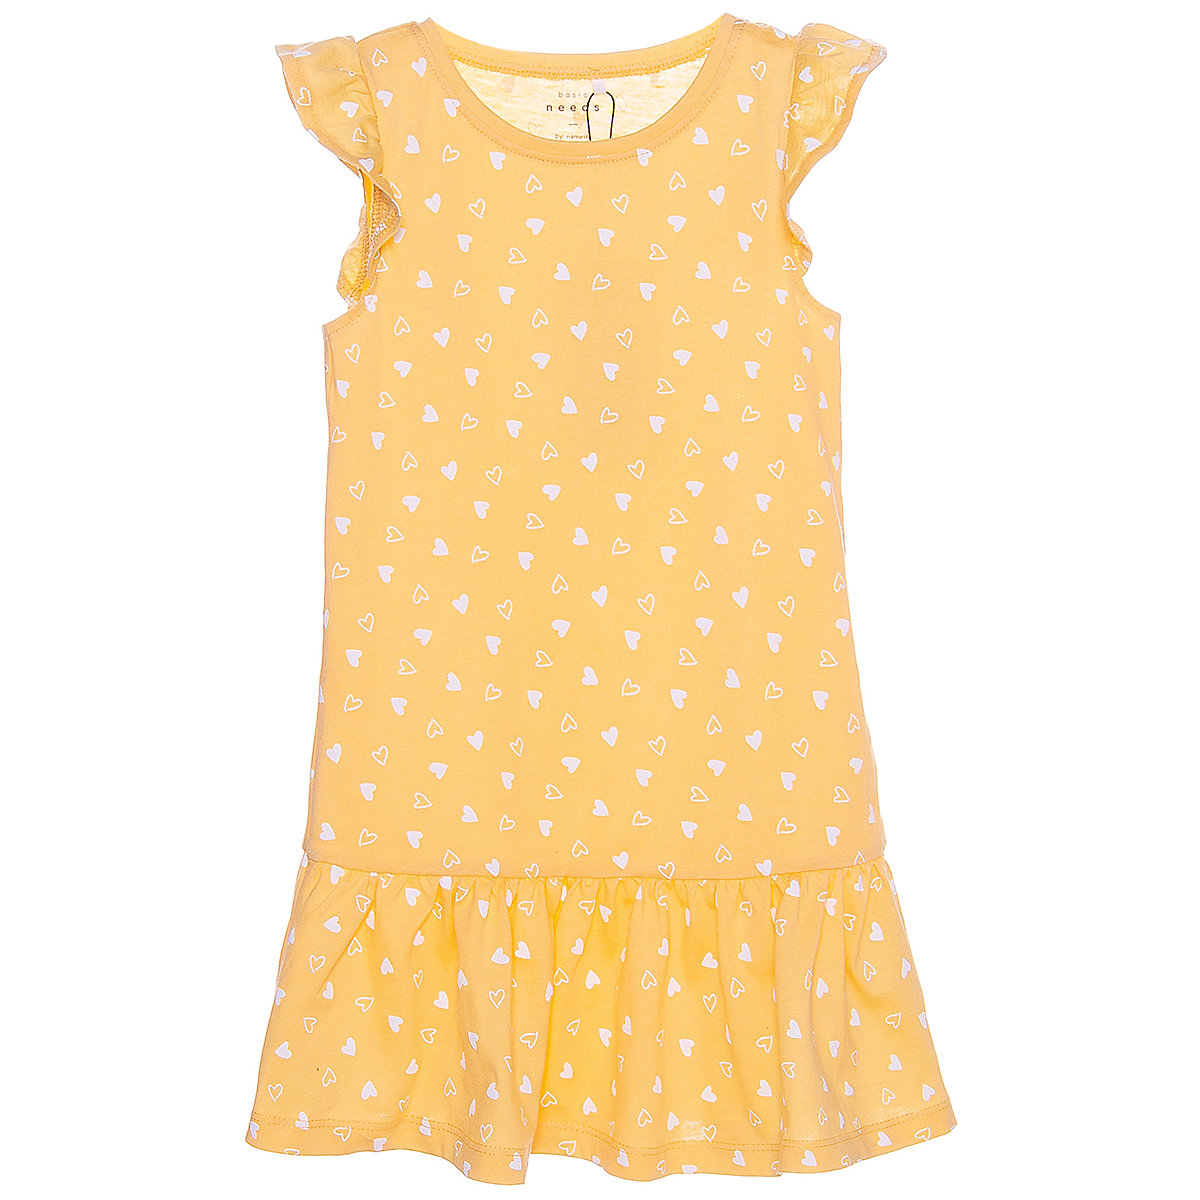 NAME IT Dresses 9384030 Dress girl children checkered pattern collar fitted silhouette sequins Cotton Casual Yellow Short Sleeve stylish short sleeve sequin embellished star pattern dress for women